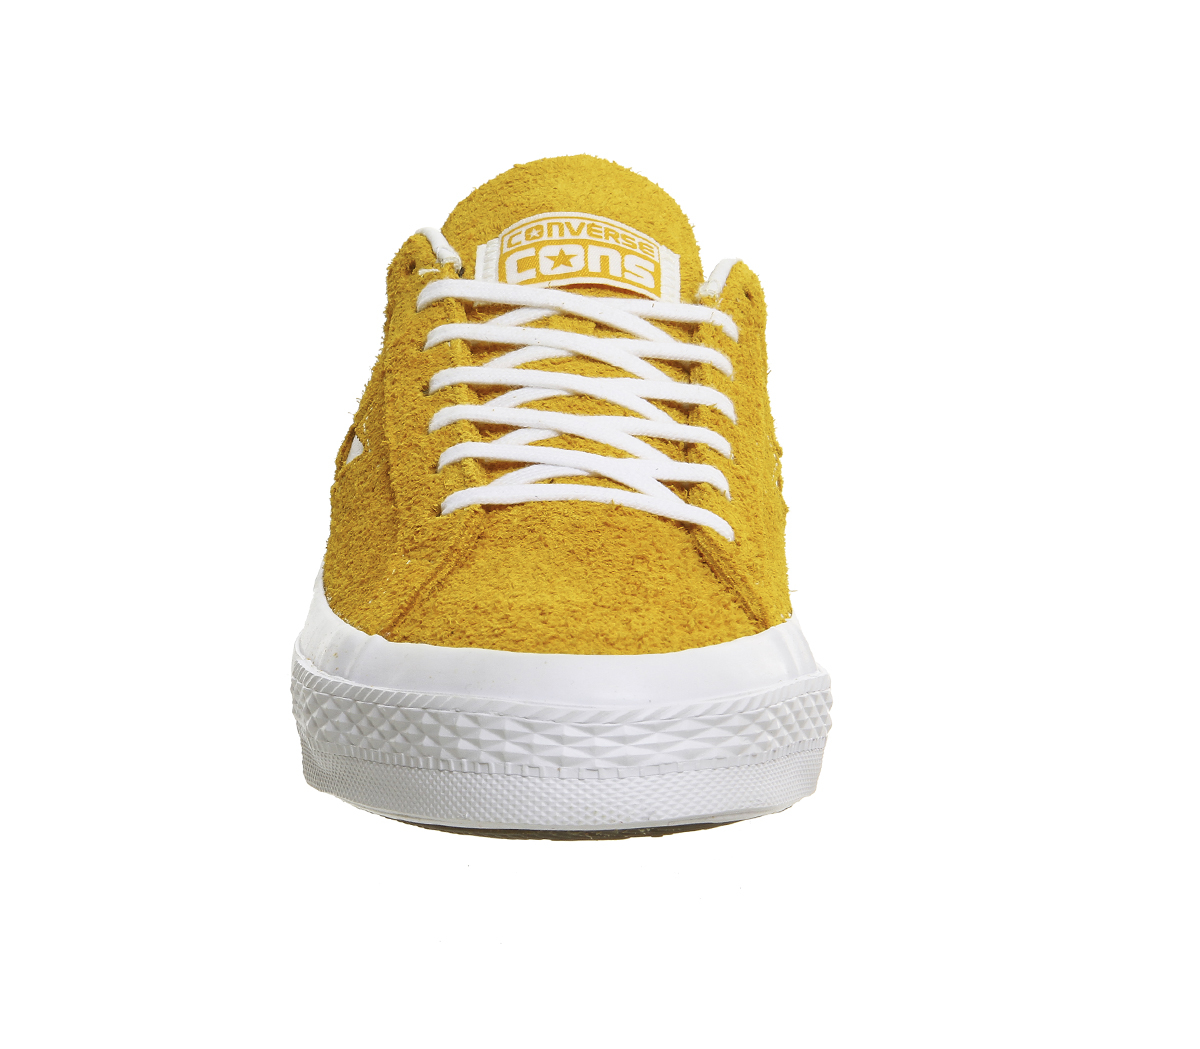 converse single men The history of converse shoes spans the history of 20th century america and the  evolution of  women's chuck taylor core ox white sneaker converse $6500   men quick view chuck 70 vintage hi sneakers in black converse $9000.